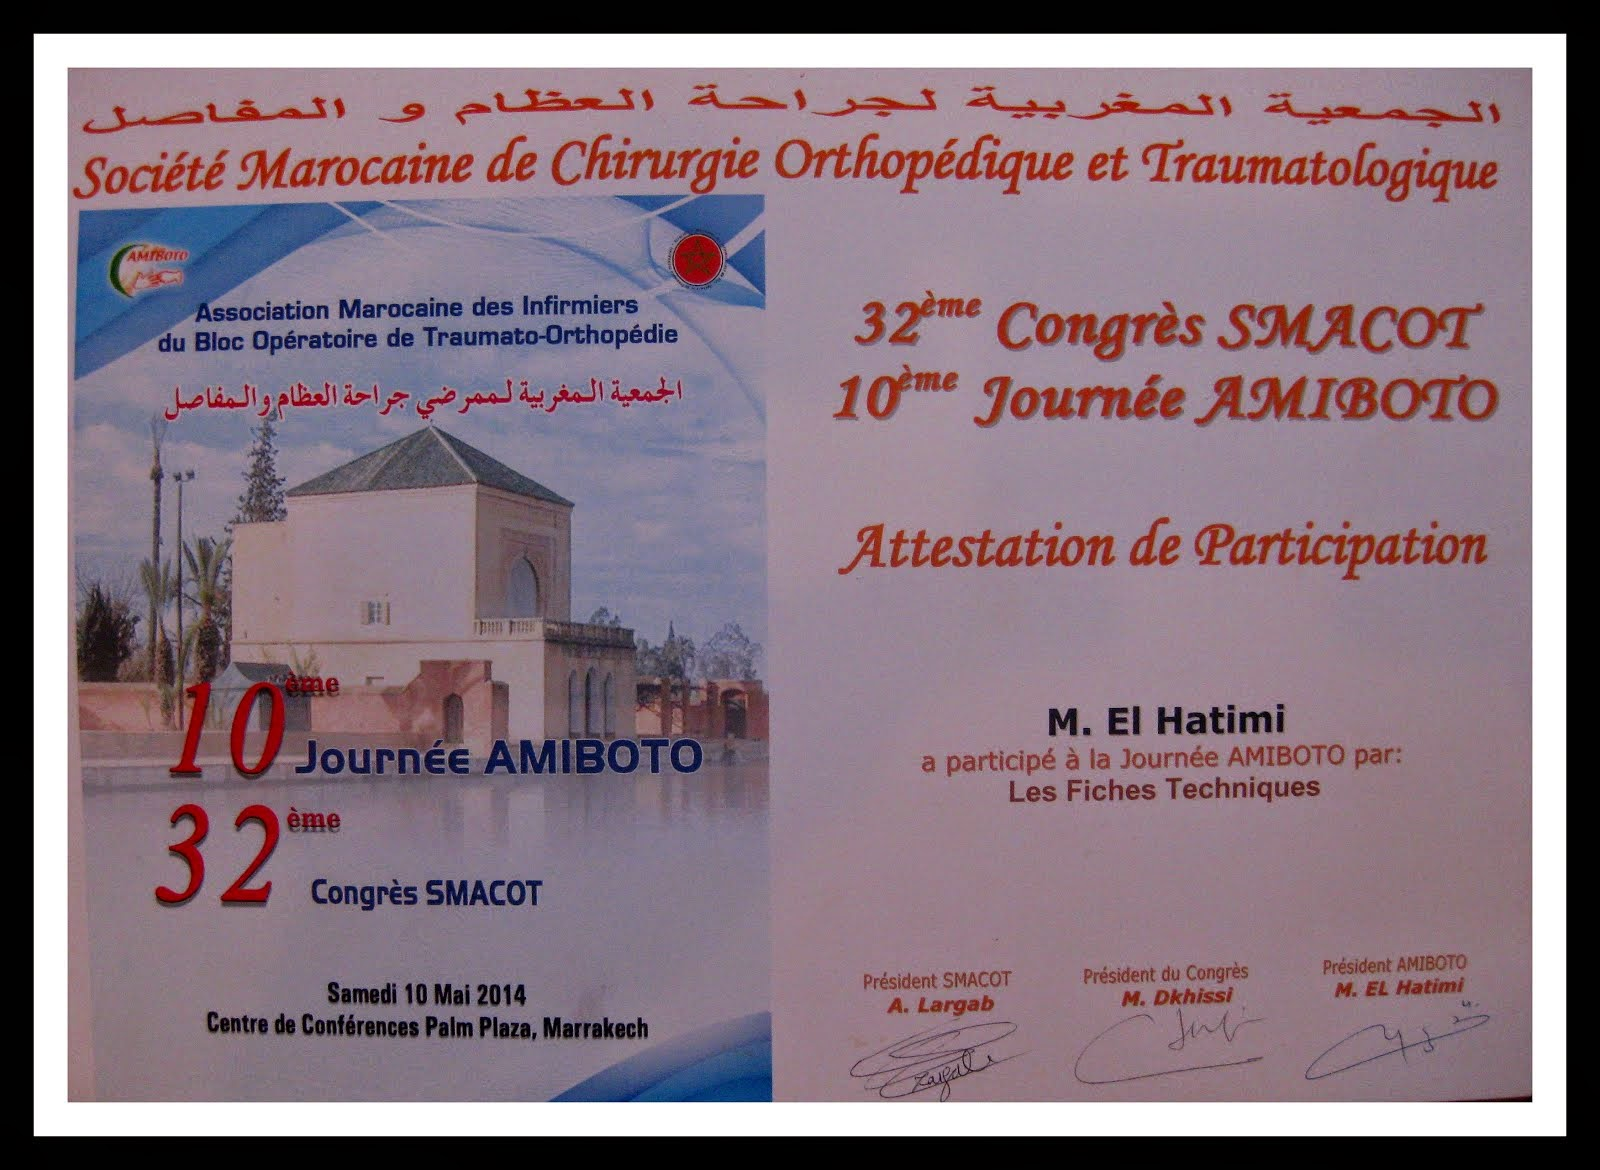 LE 10EME JOURNEE D AMIBOTO A MARRAKECH